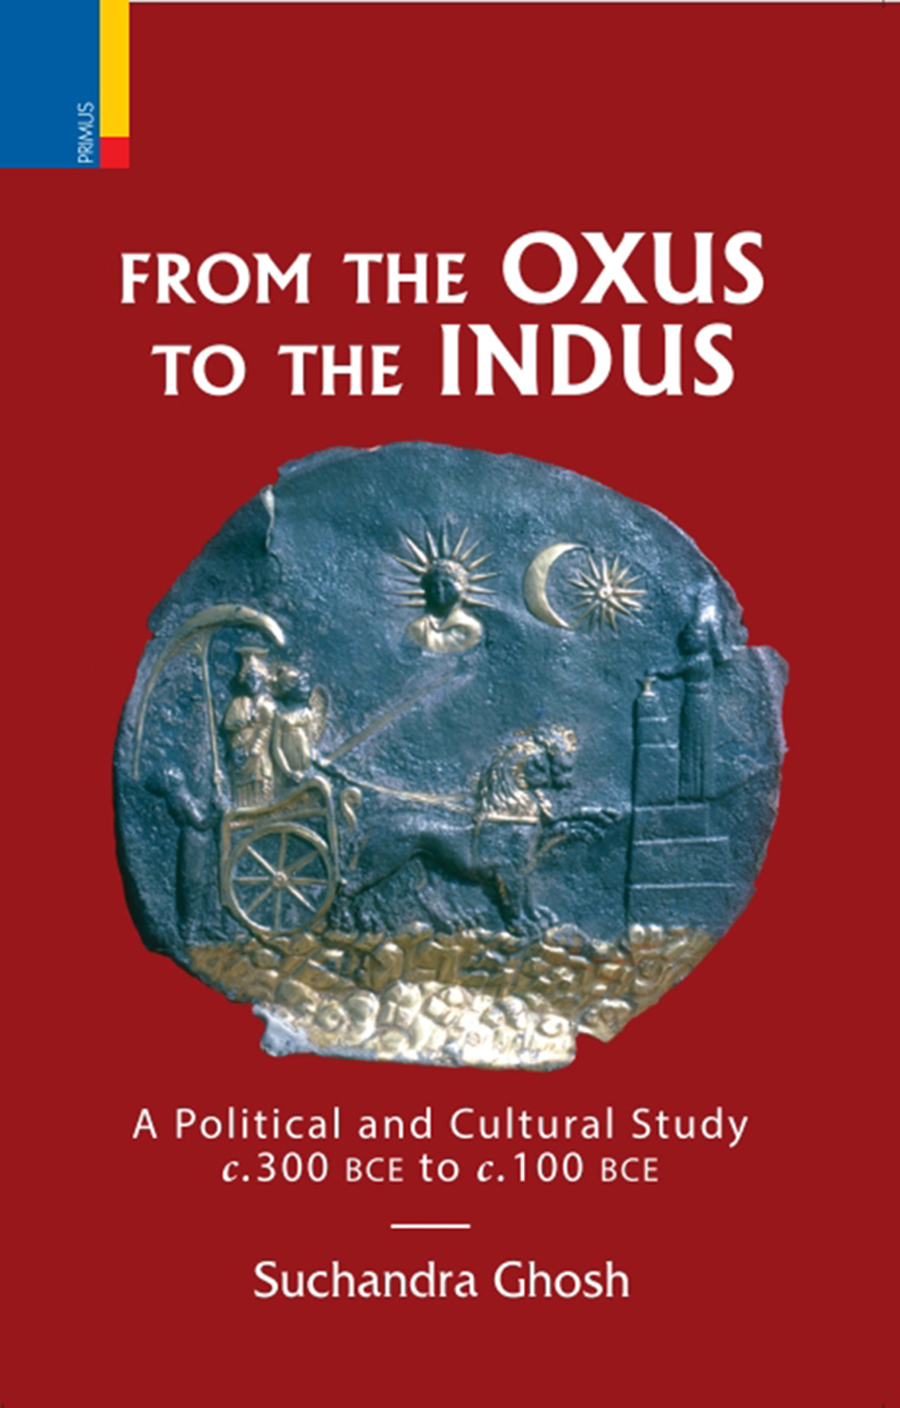 From The Oxus to The Indus: A Political and Cultural Study c. 300BCE - c. 100 BCE